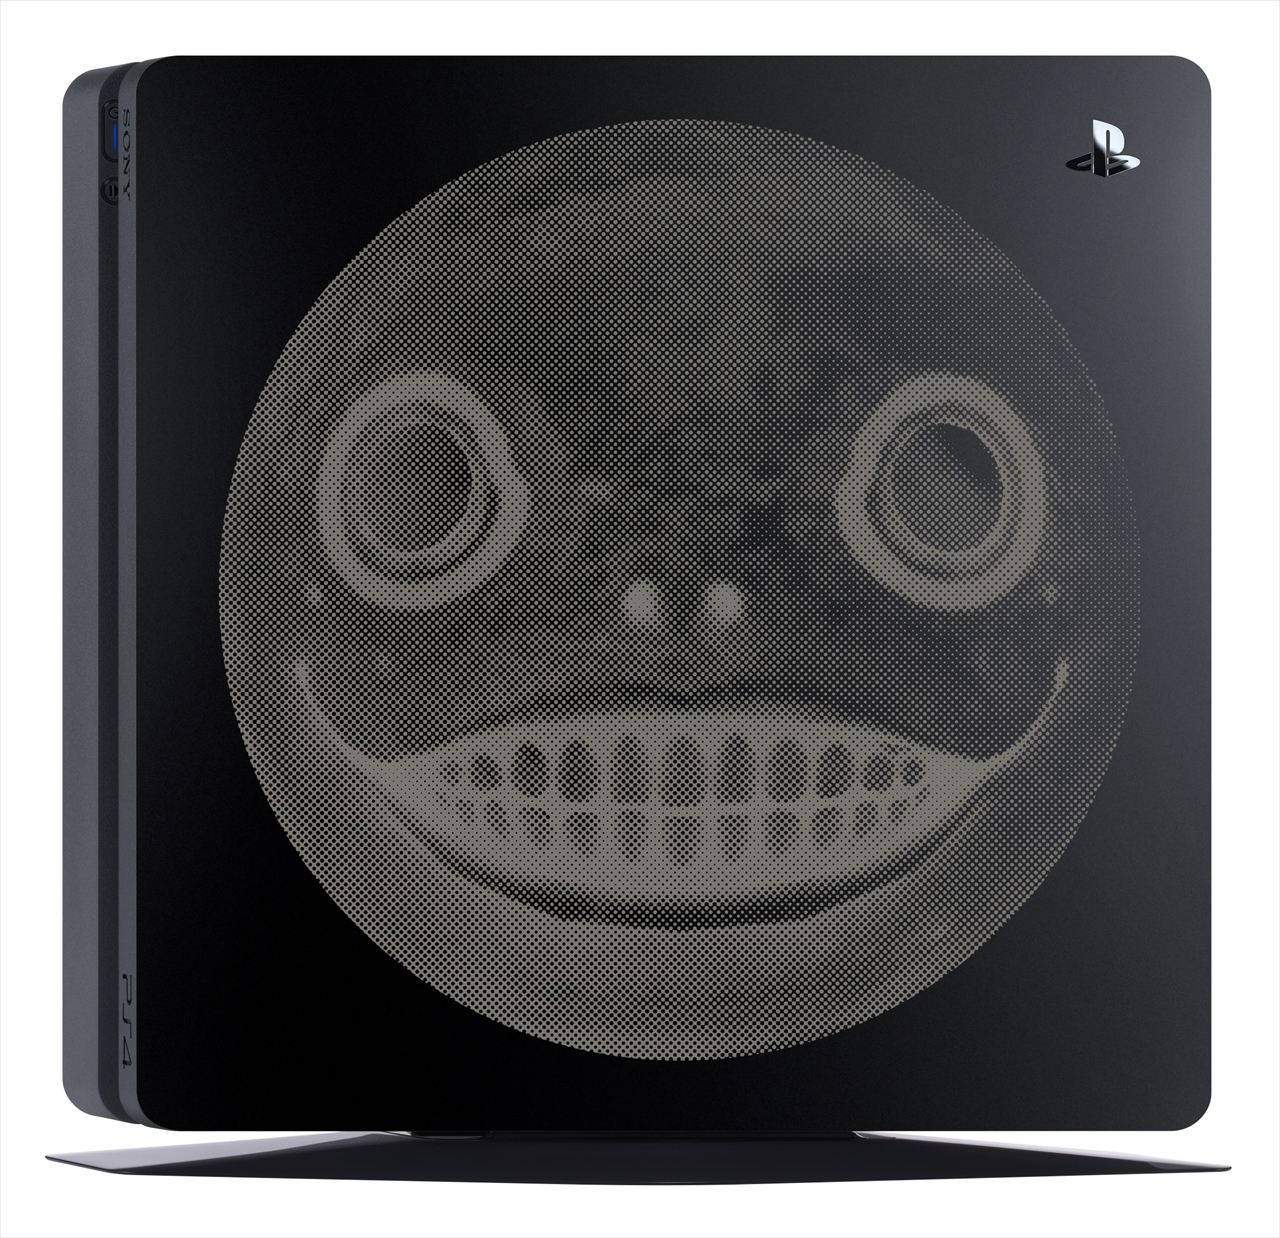 nier automata emil edition ps4